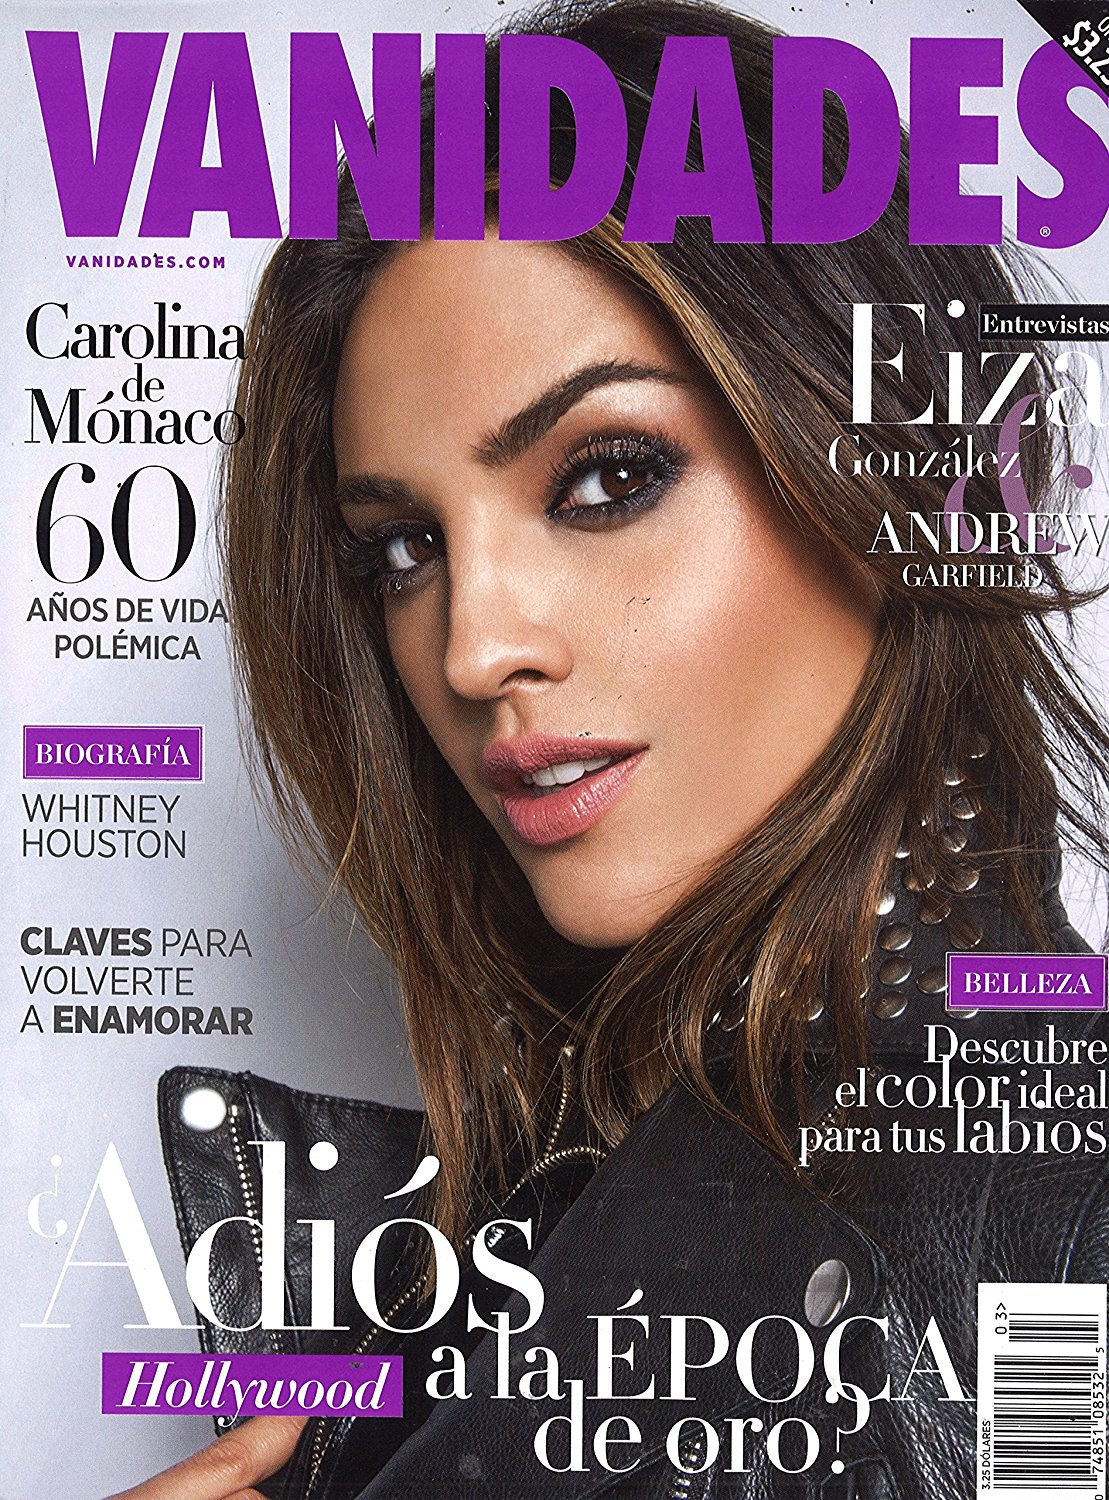 More Details about Vanidades Magazine